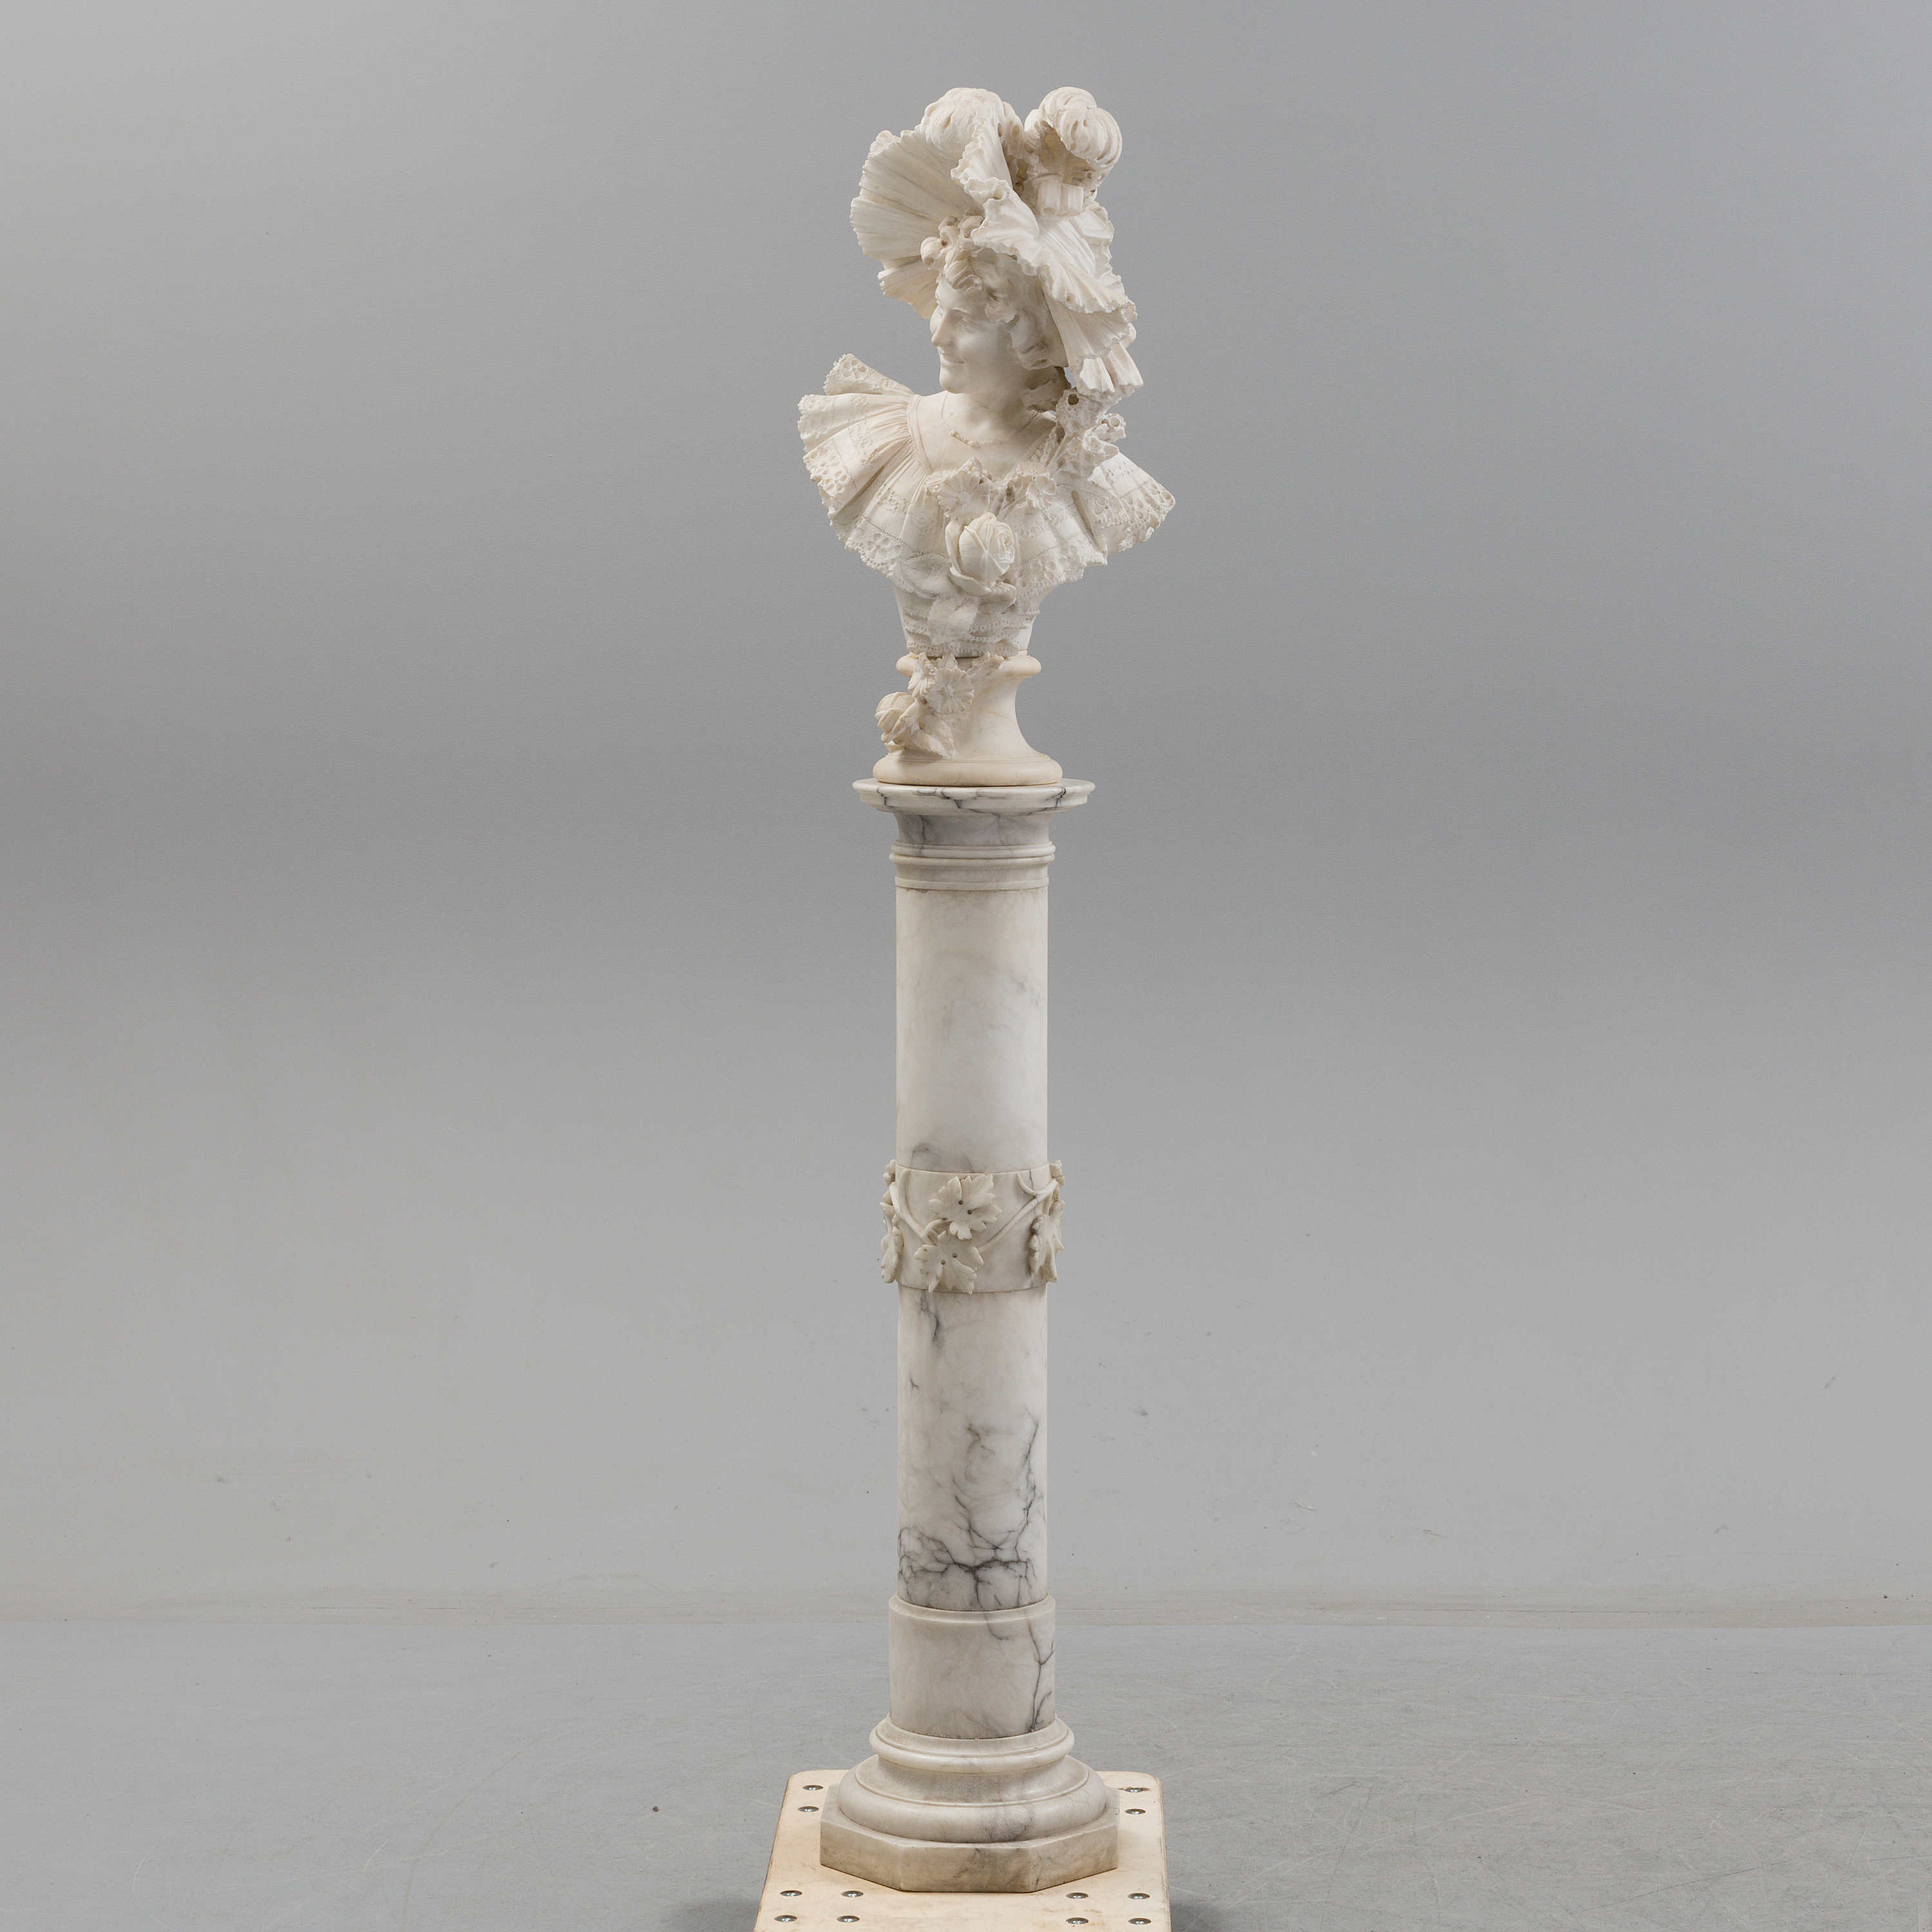 arts for bust custom decorative boy of bronze listings on pedestal a sculpture objects